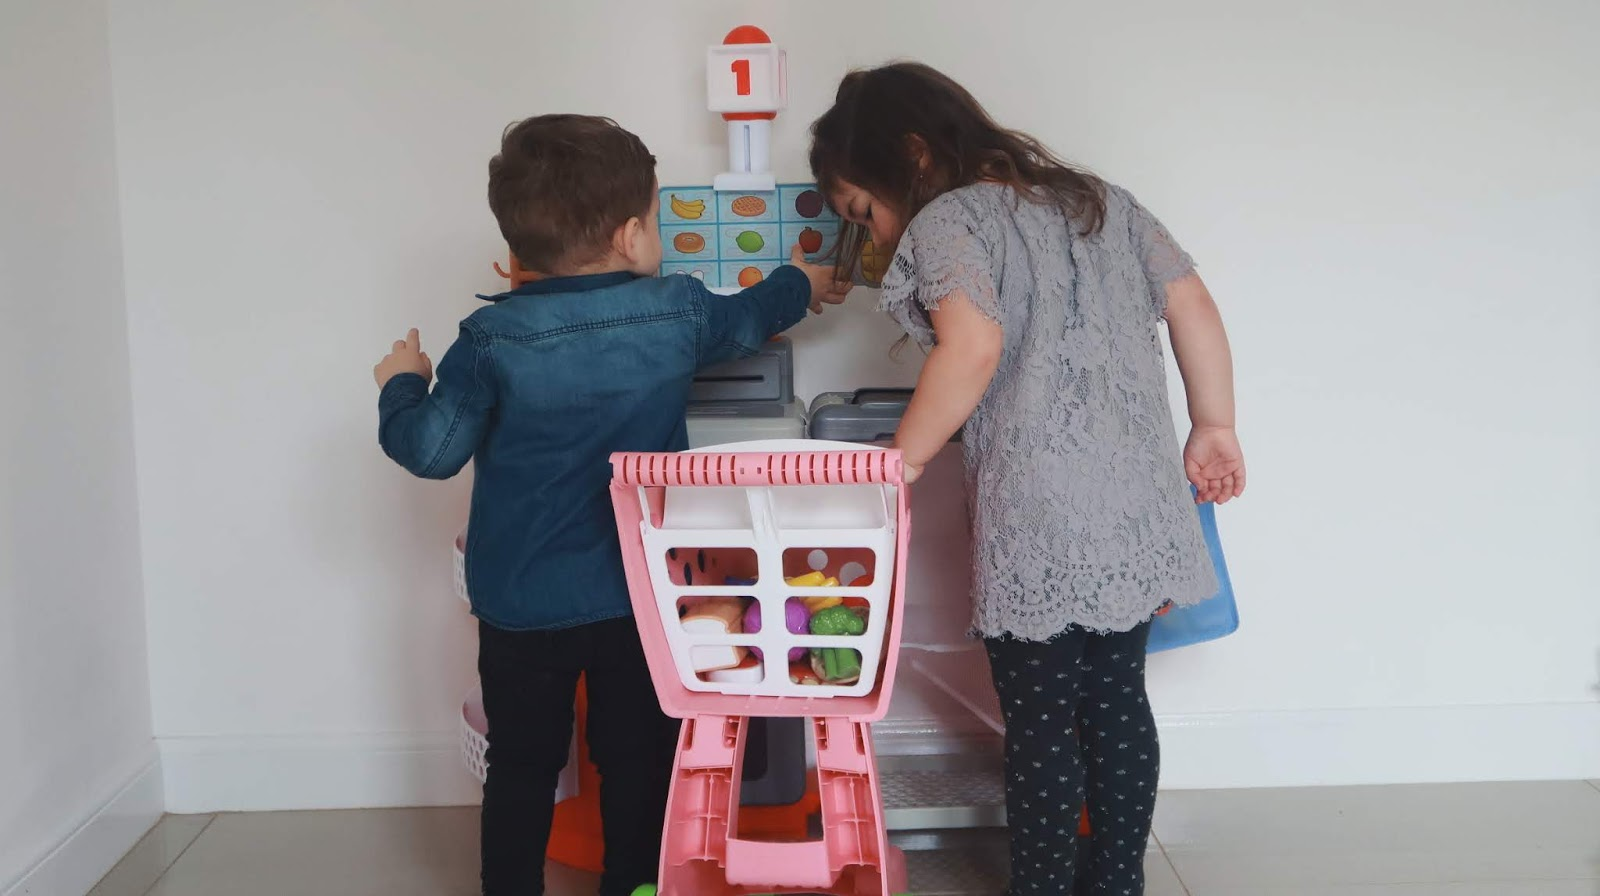 THE KIDS DO THE WEEKLY FOOD SHOP | LITTLE TIKES SHOP 'N' LEARN SMART